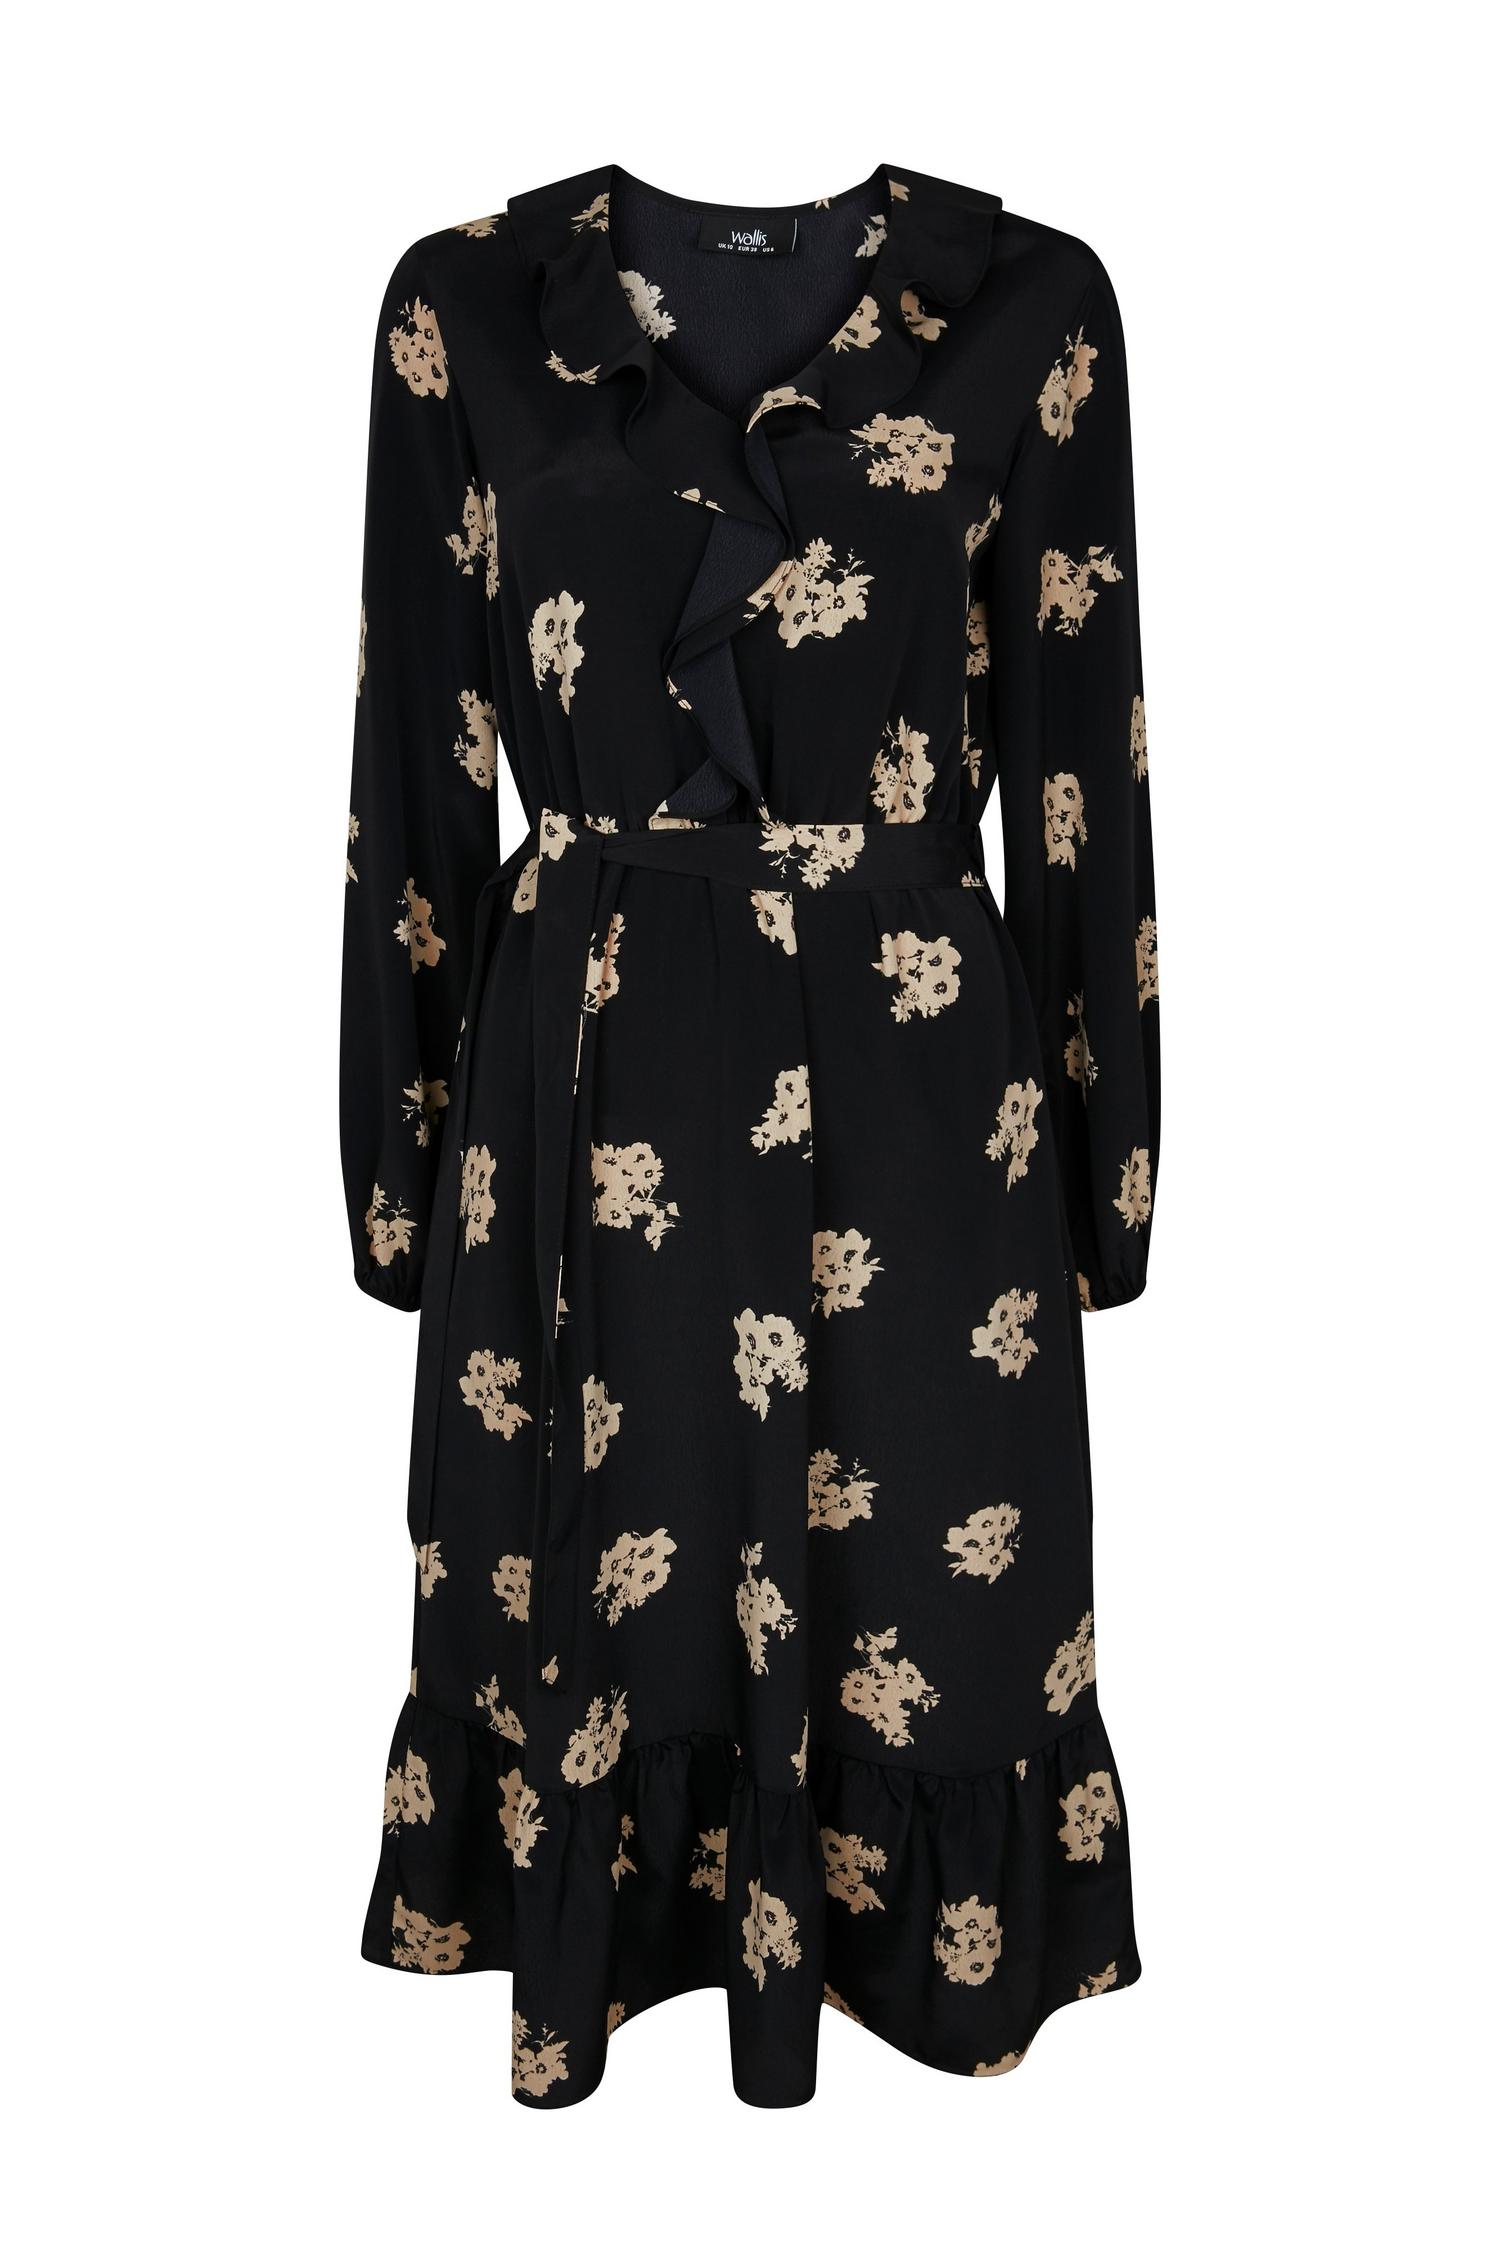 165 Black Floral Print Ruffle Front Midi Dress image number 4